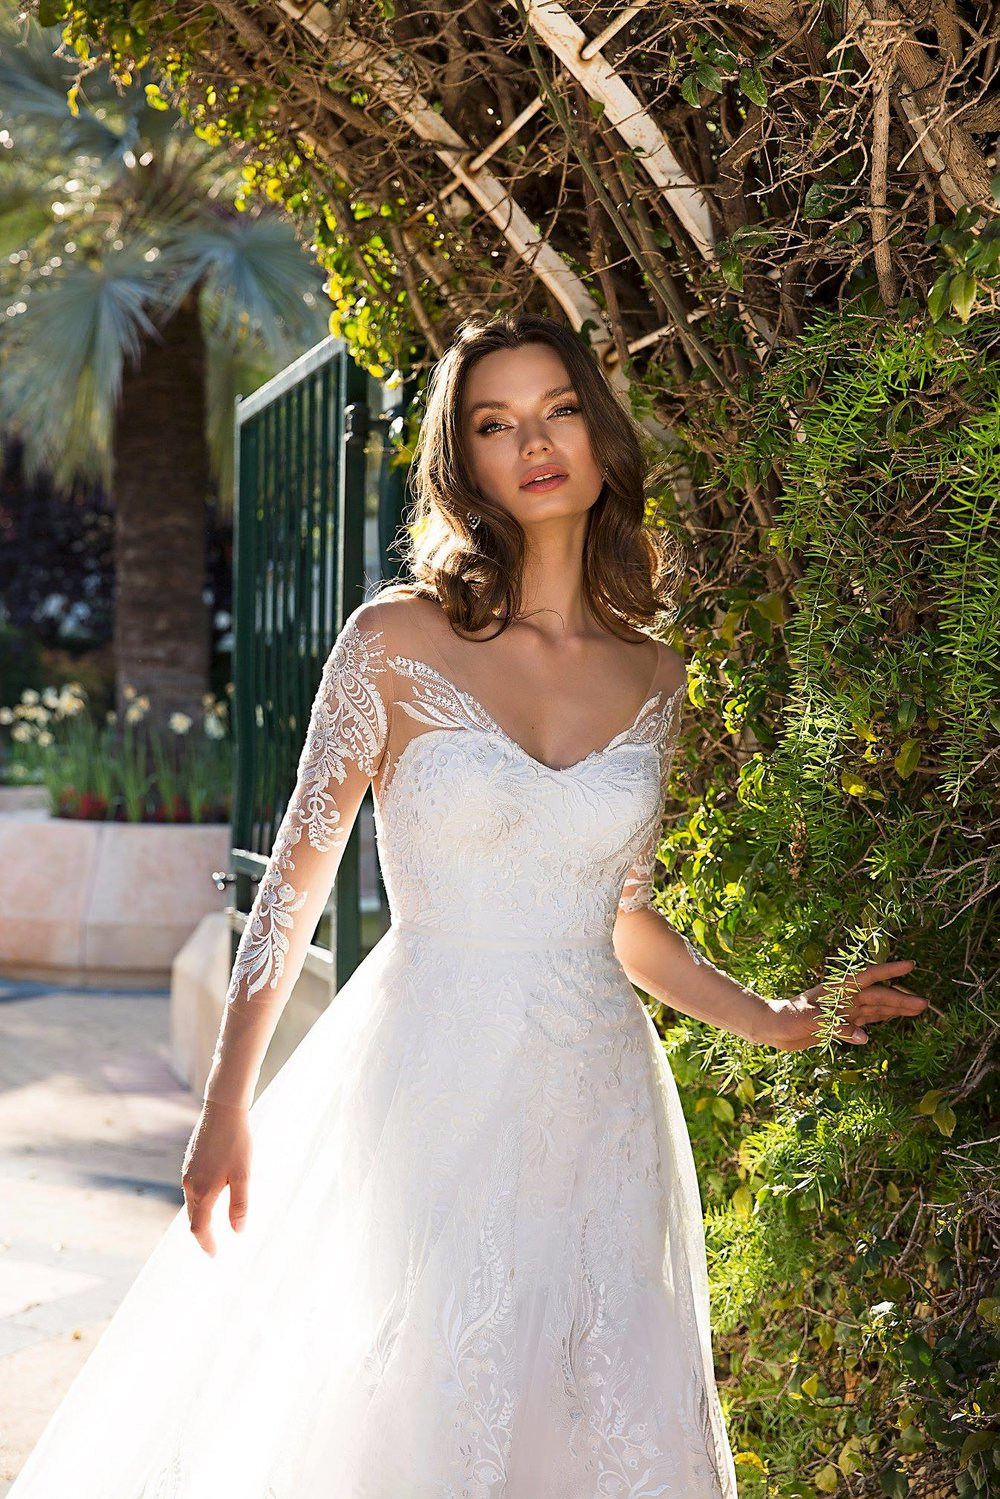 LILIAN wedding dress by TINA VALERDI